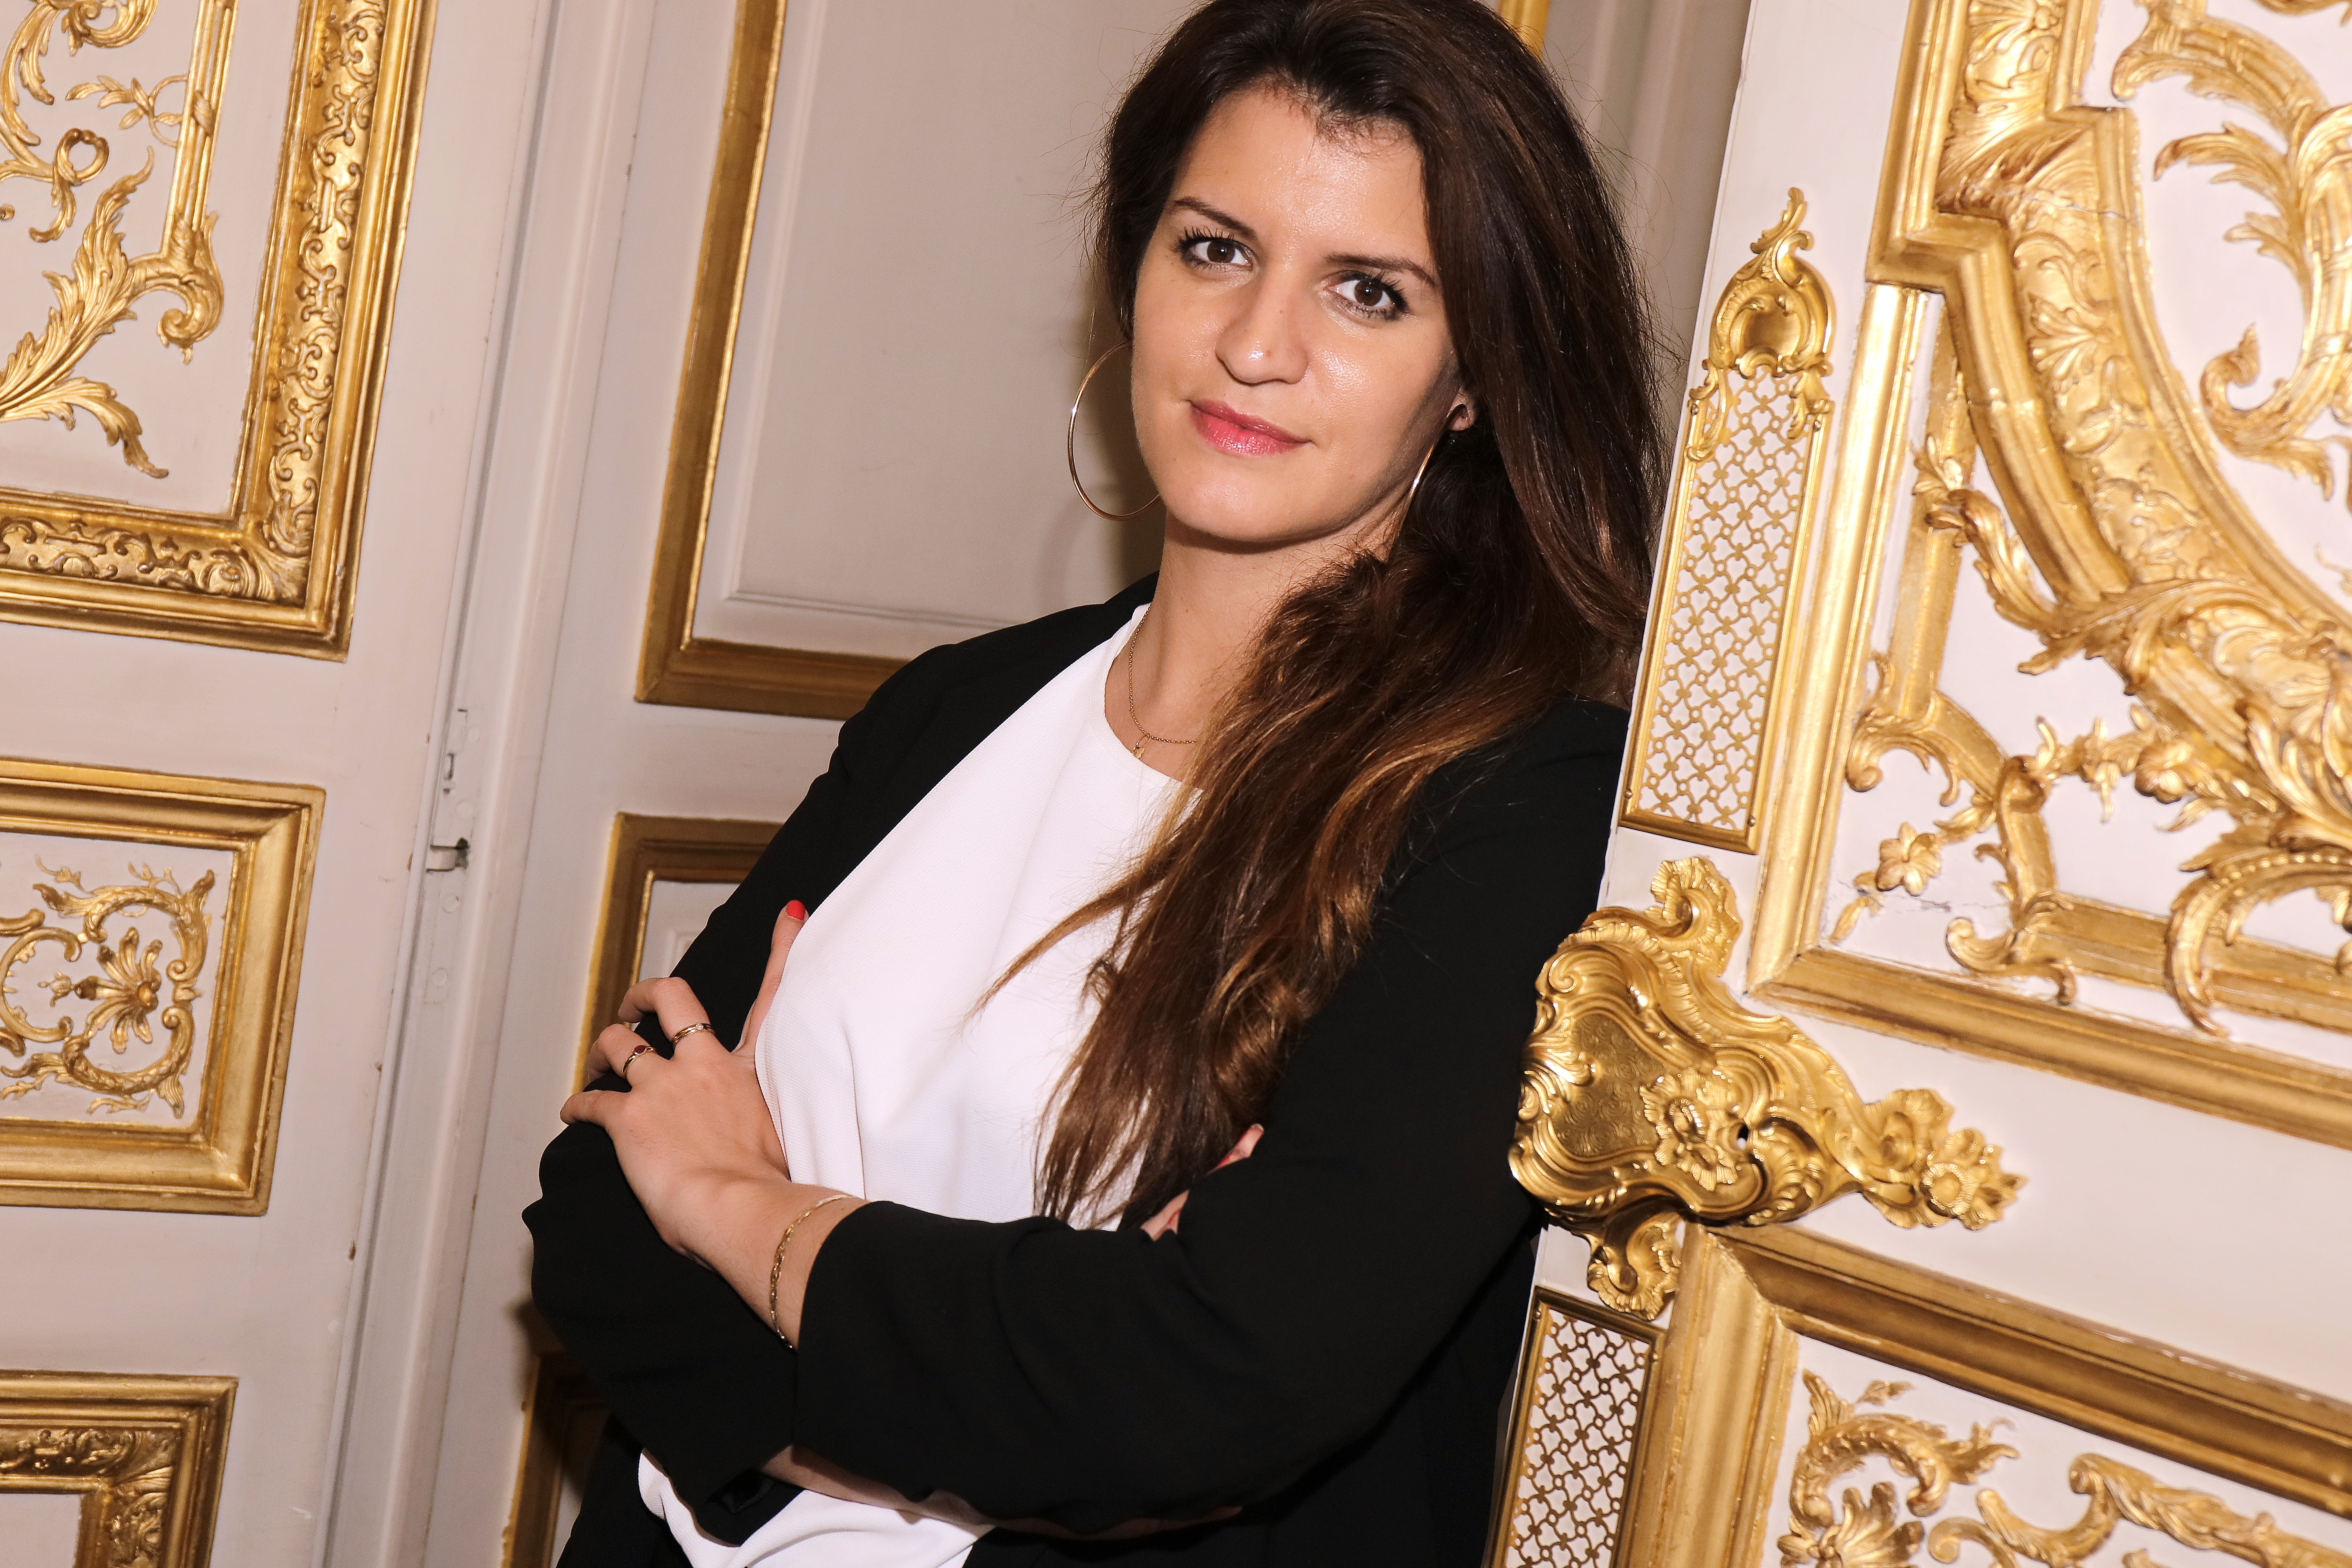 Marlene Schiappa poses in her office in Paris, France on April 7, 2018.